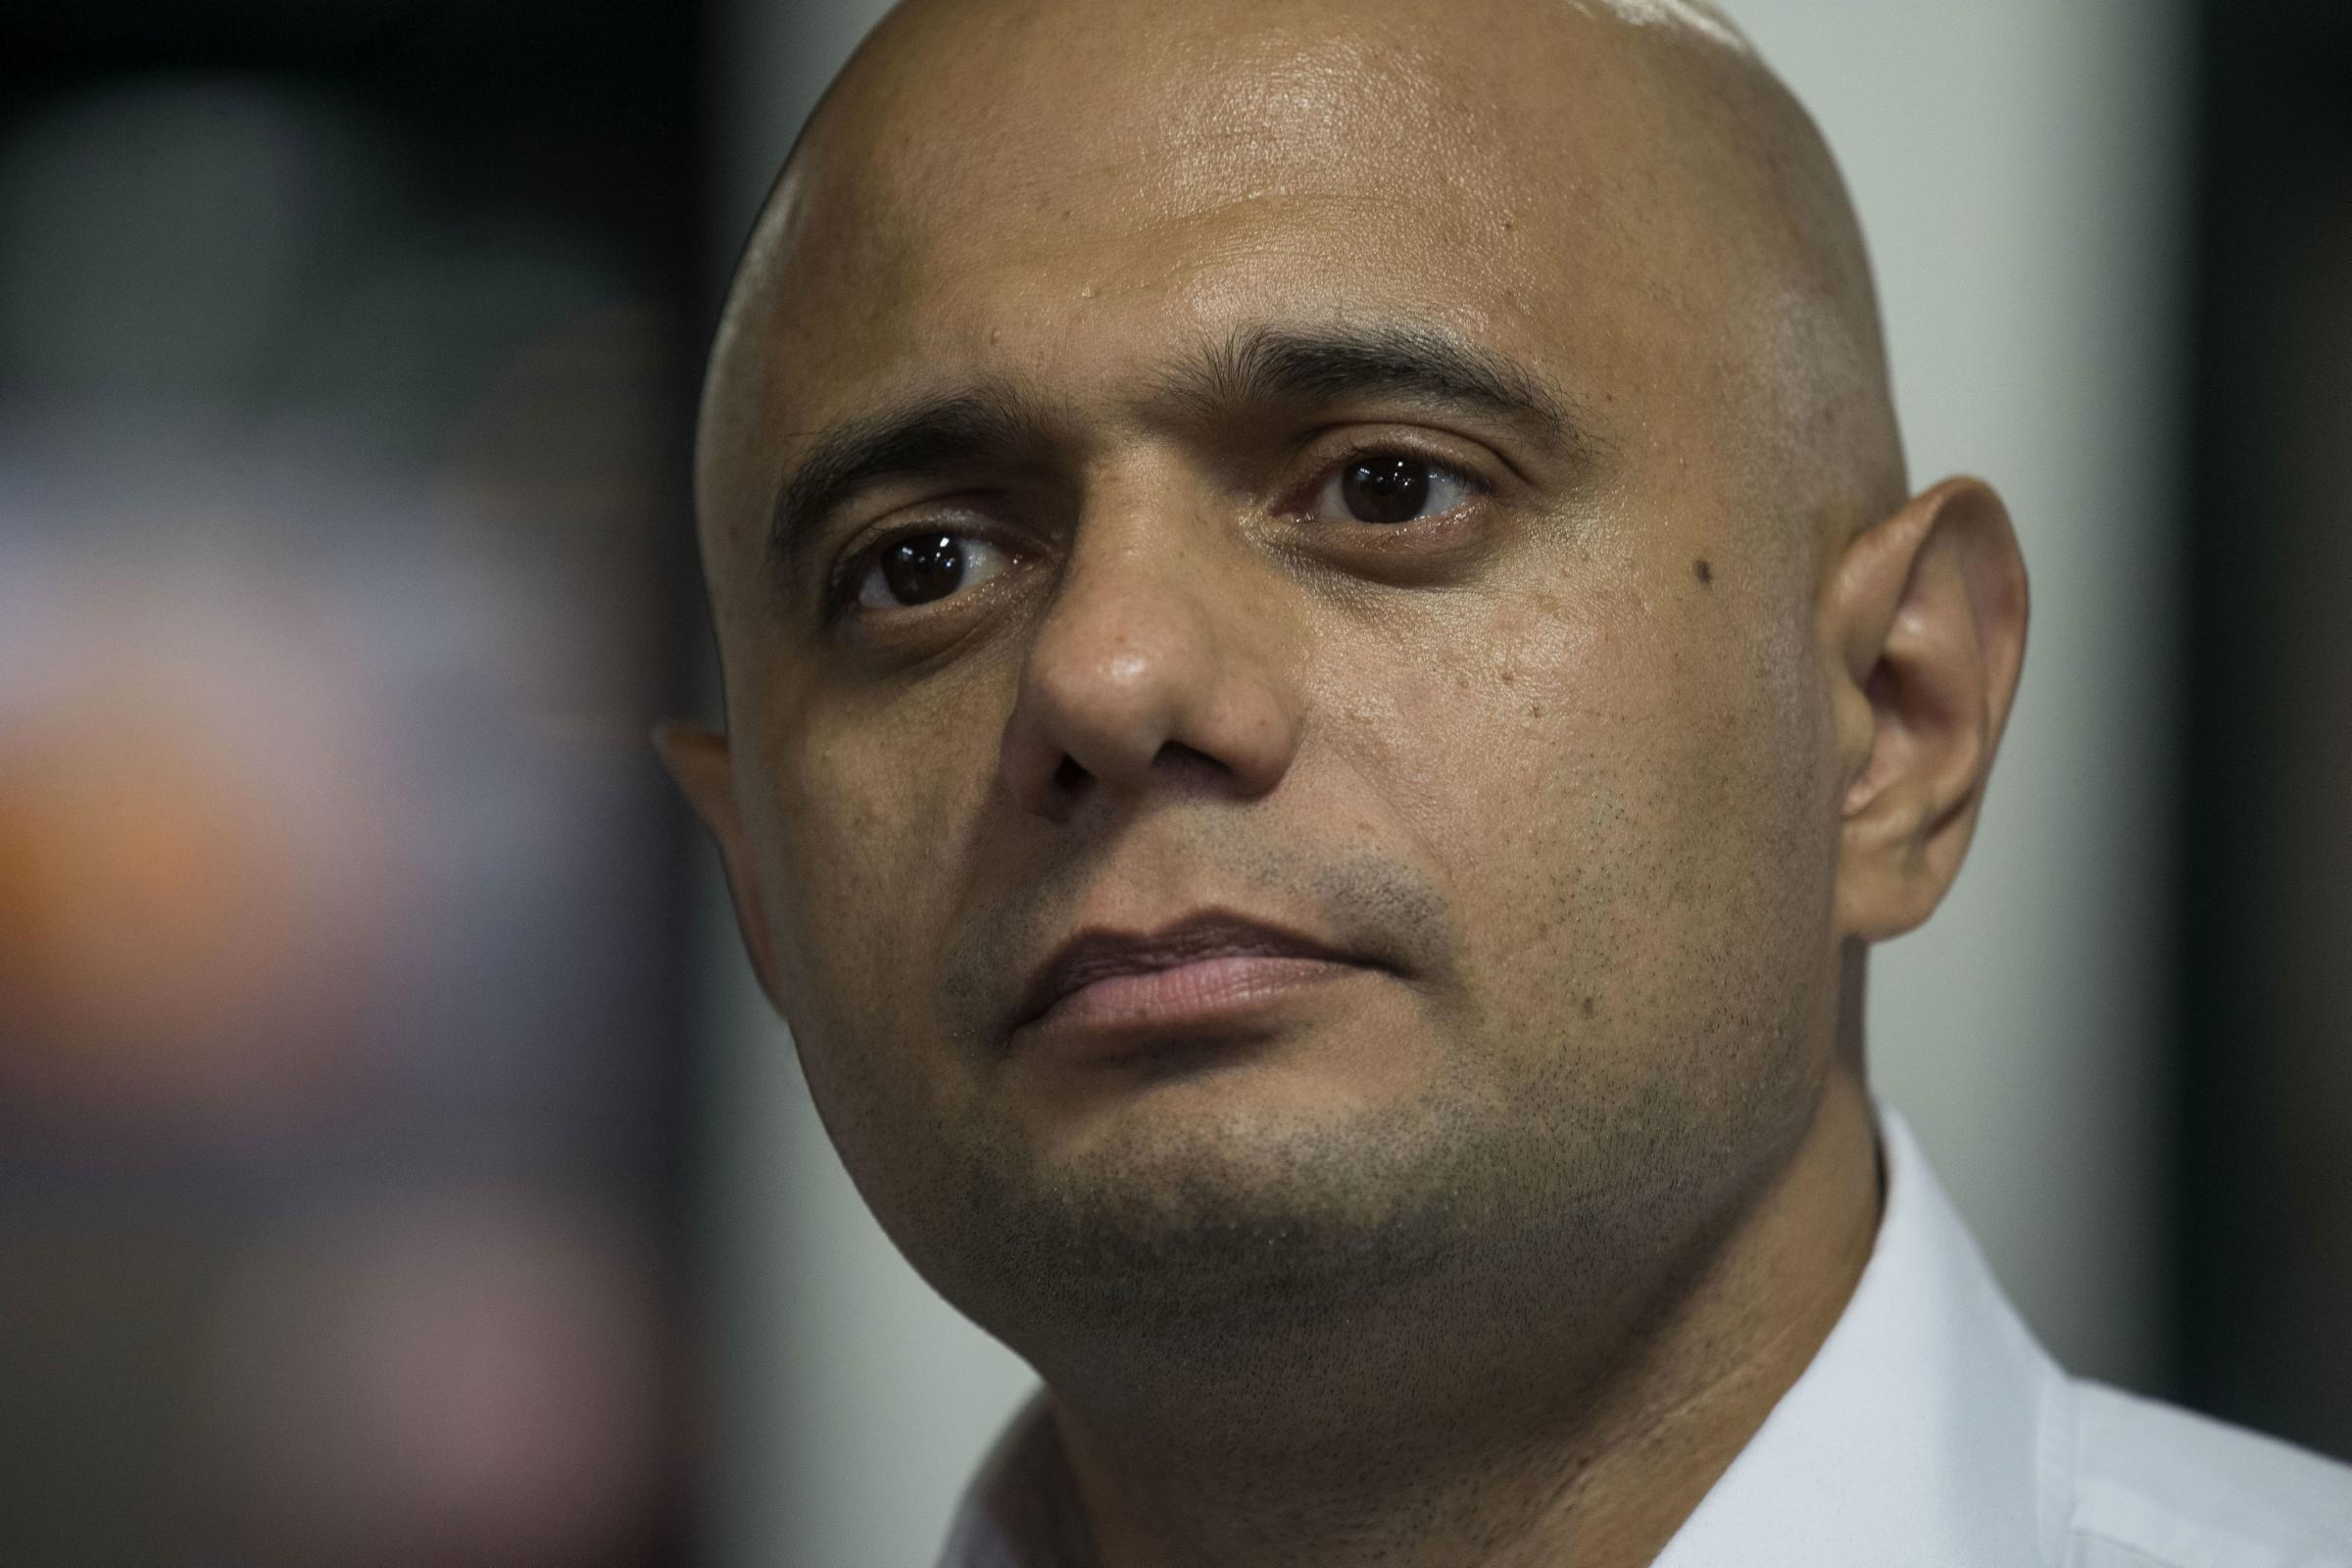 Sajid Javid has been 'very clear' supposedly